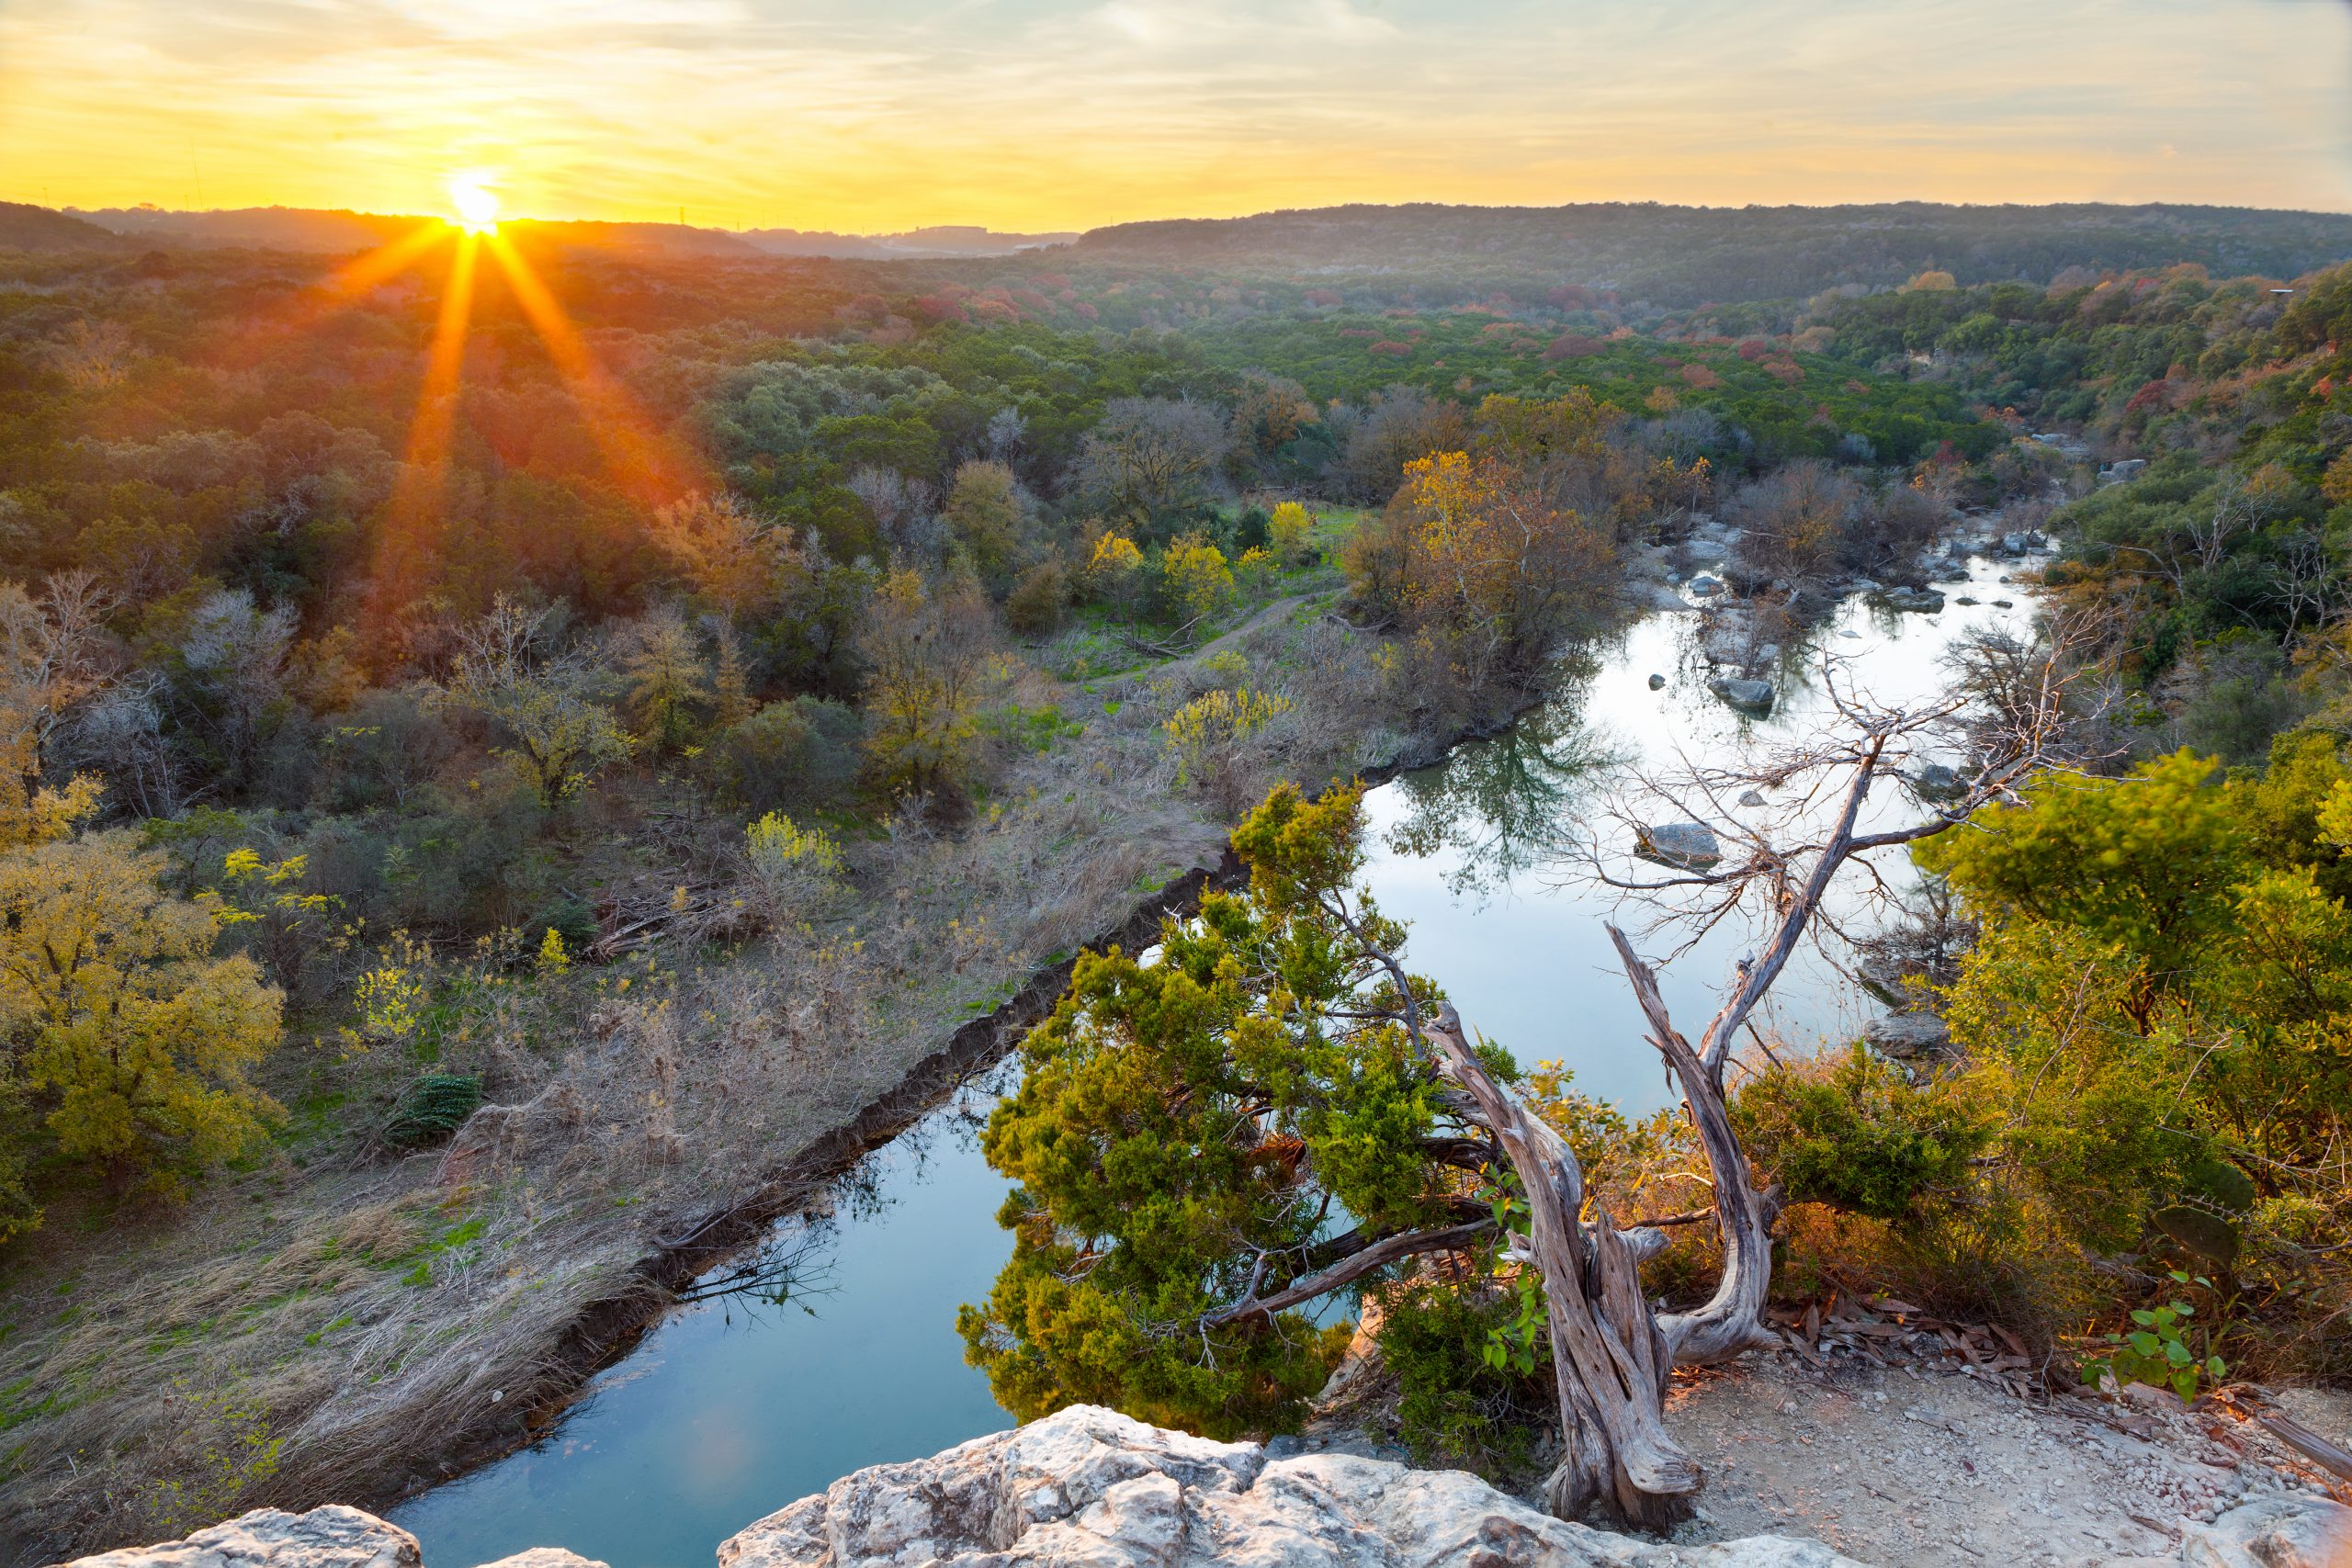 sun setting over barton creek greenbelt, one of the best places to go hiking in austin texas